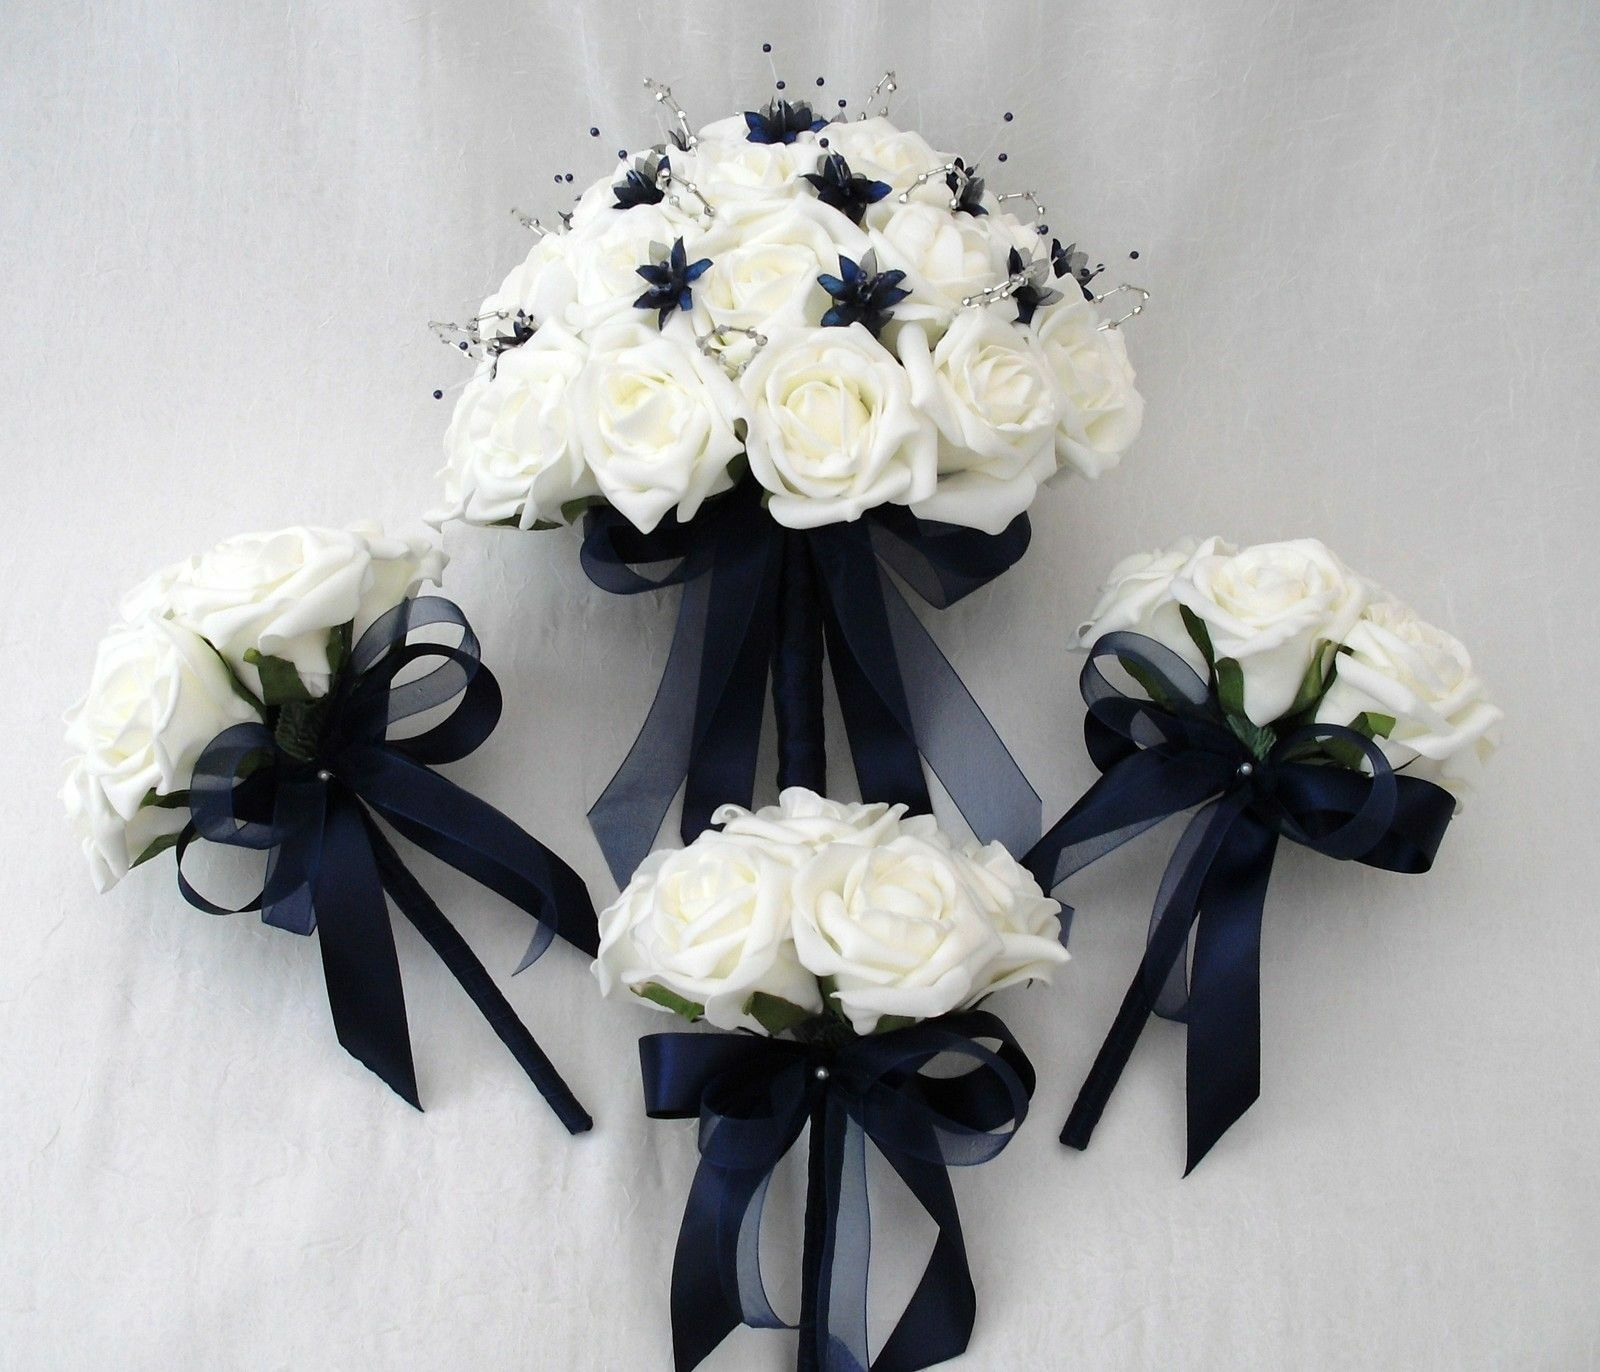 BRIDES WITH 3 FLOWERGIRLS POSY BOUQUETS IN IVORY & NAVY Blau, ARTIFICIAL FLOWERS